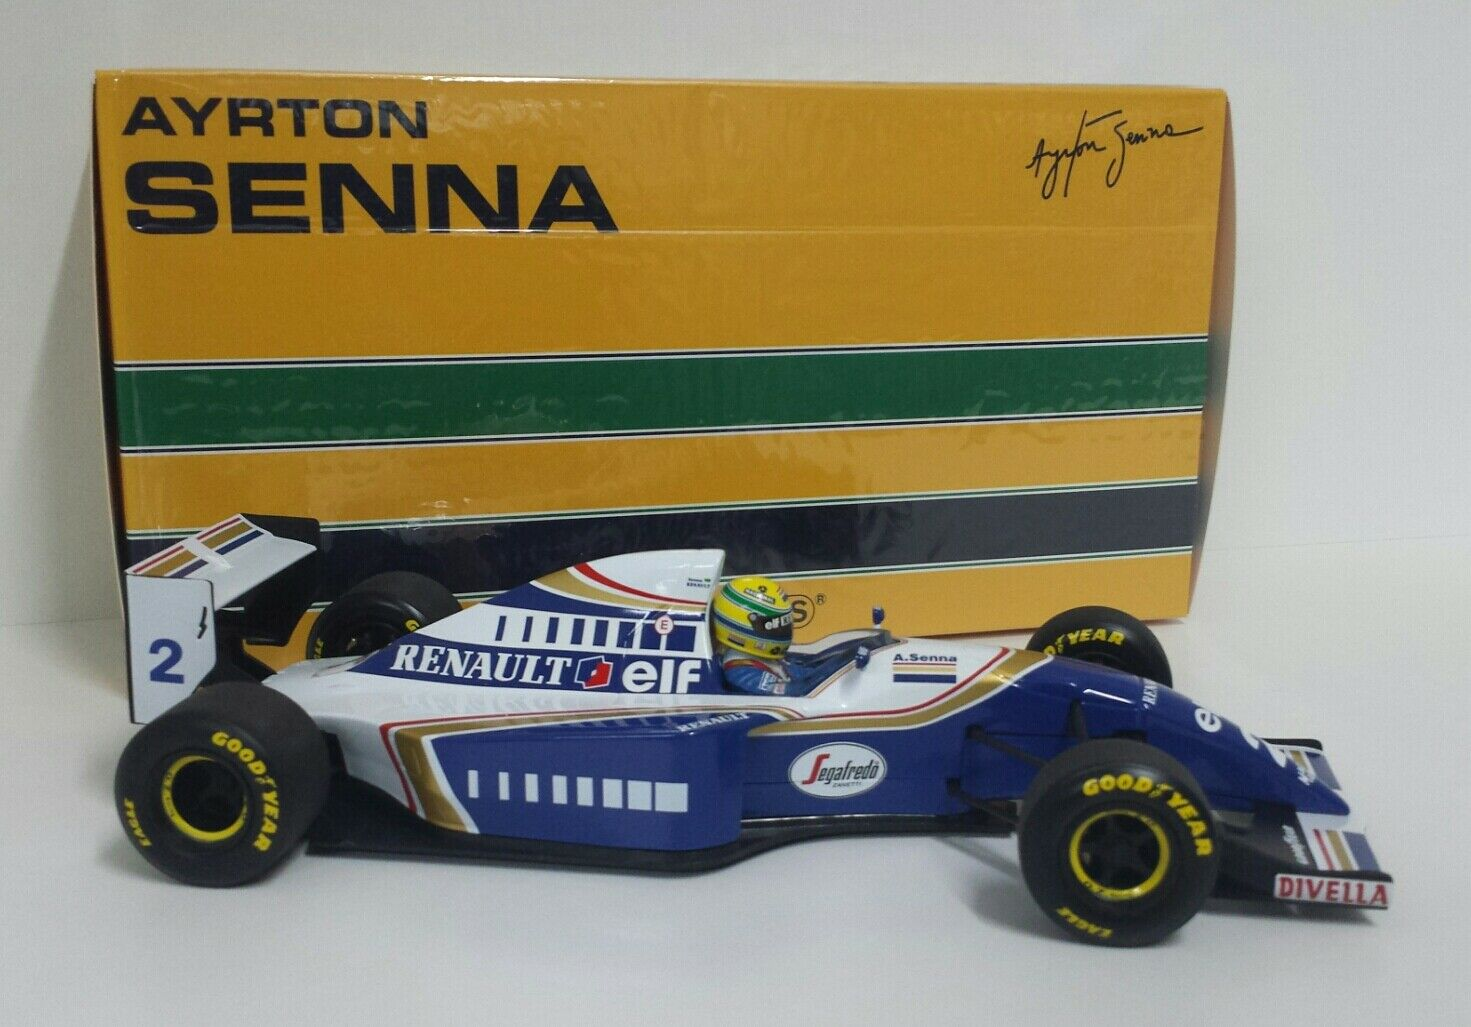 MINICHAMPS AYRTON SENNA 1/18 MODELLINO DIECAST AUTO F1 WILLIAMS RENAULT 1994 NEW